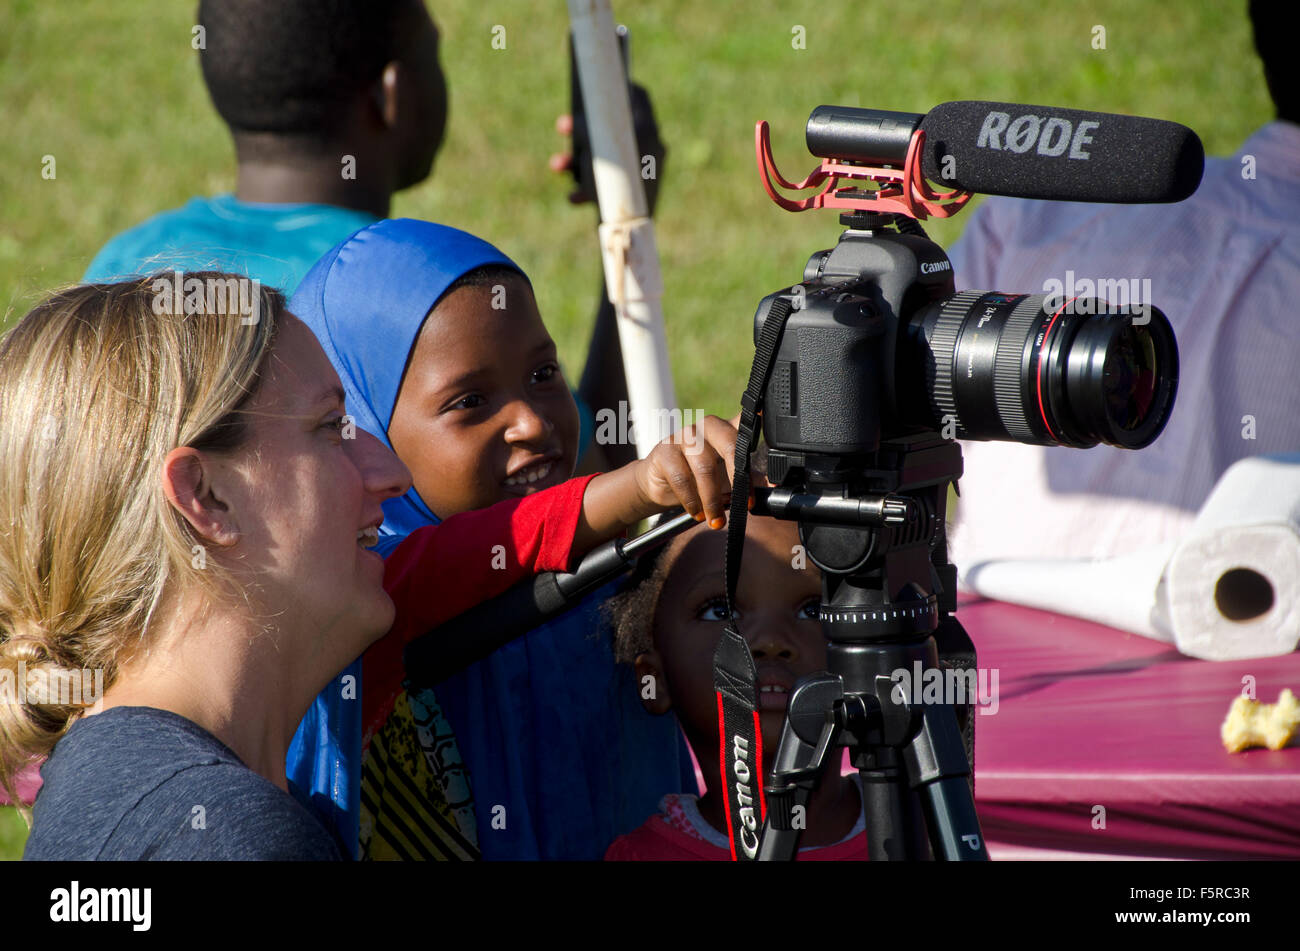 Young woman from Colby College  demonstrating video filming to young Bantu woman, New Gloucester Maine, USA - Stock Image